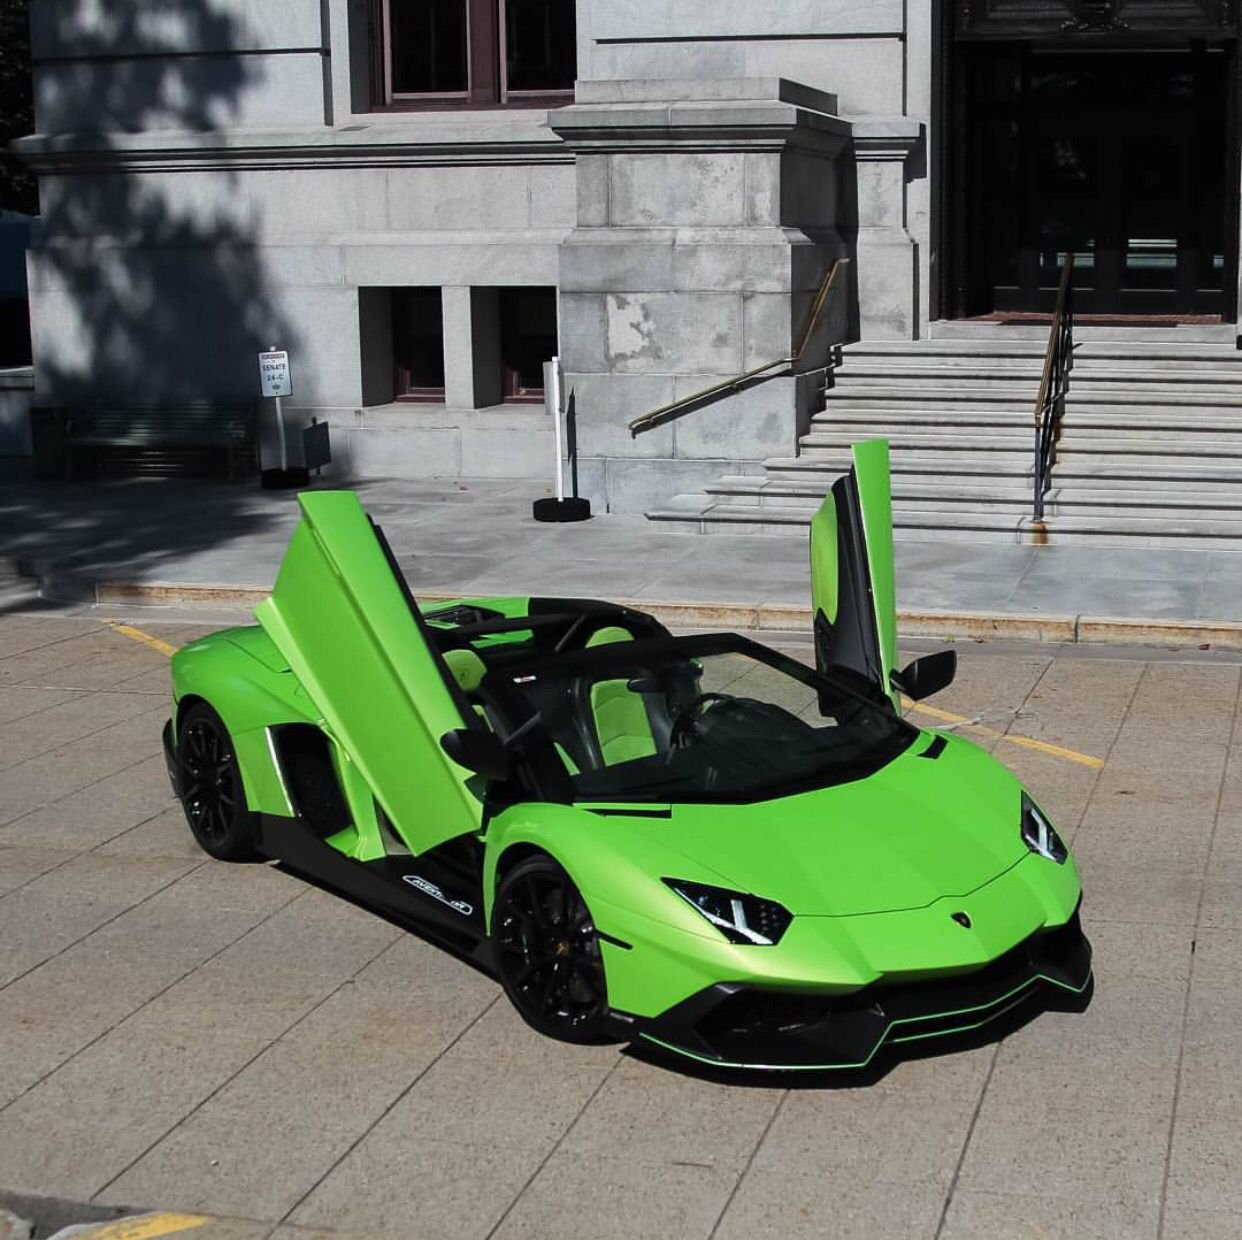 Lamborghini 50 Anniversario Edition Aventador Roadster Painted In